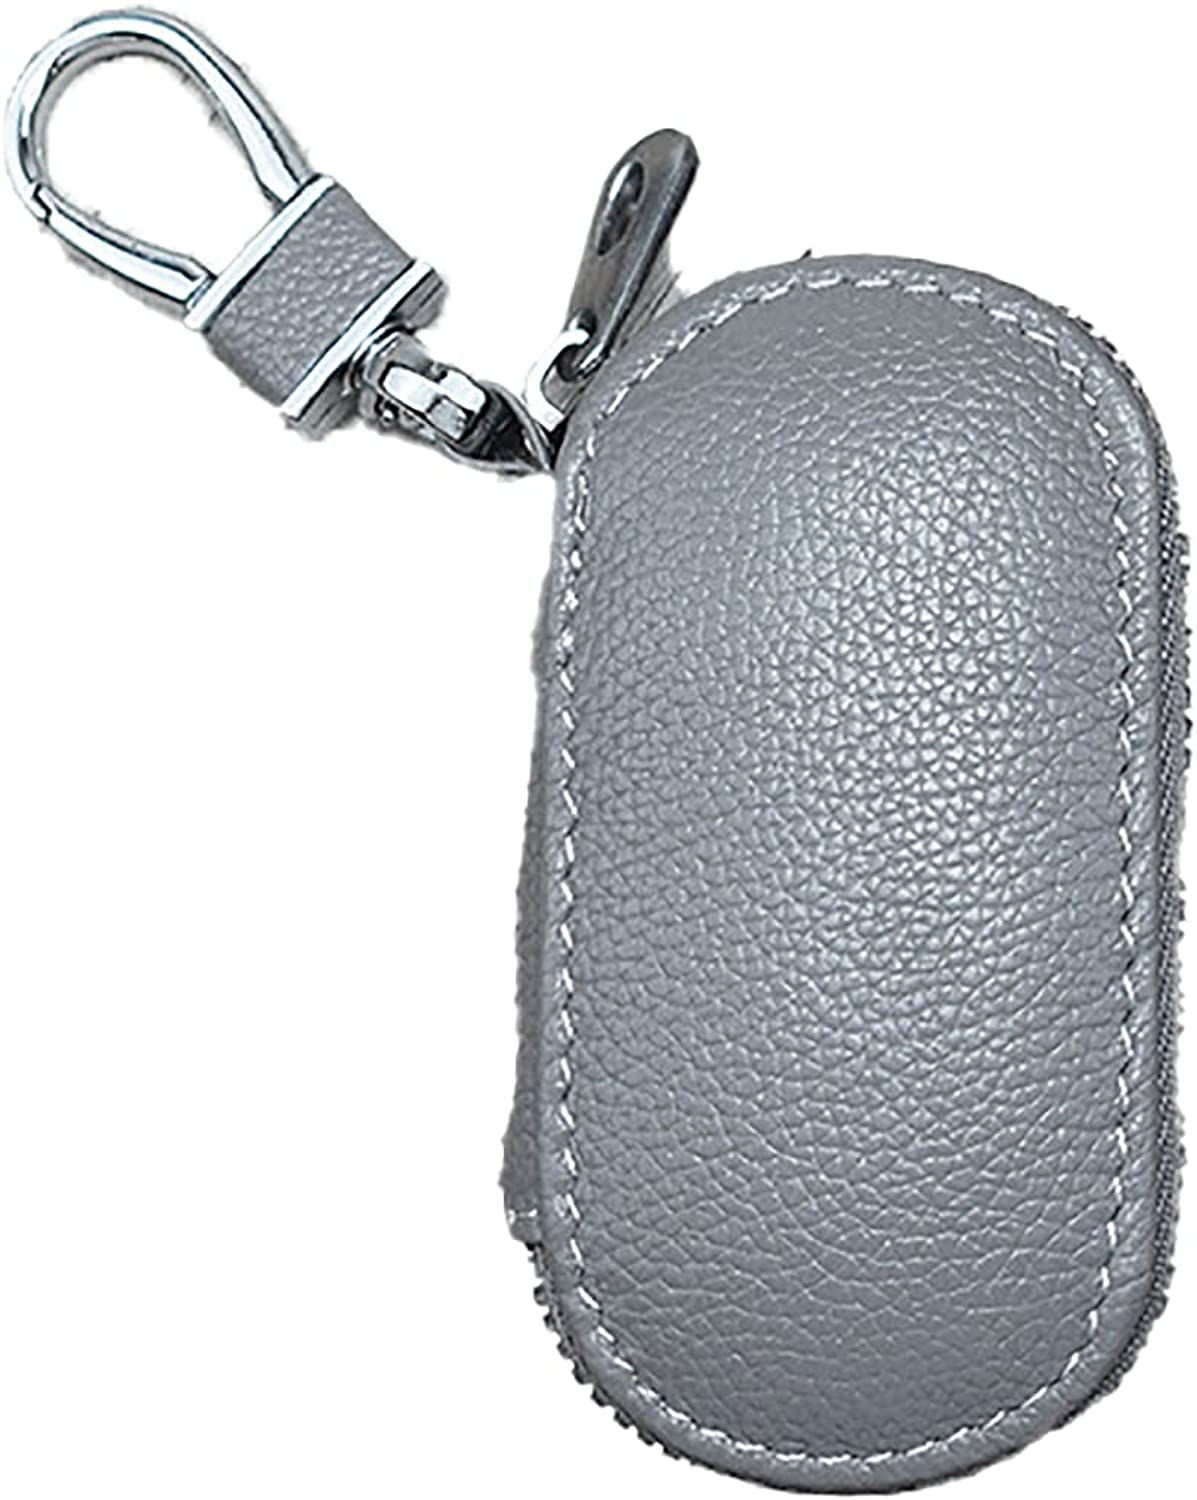 Key Case Stylish Pouch Holder Fob Cheap Ranking TOP4 Cover Organ Unisex